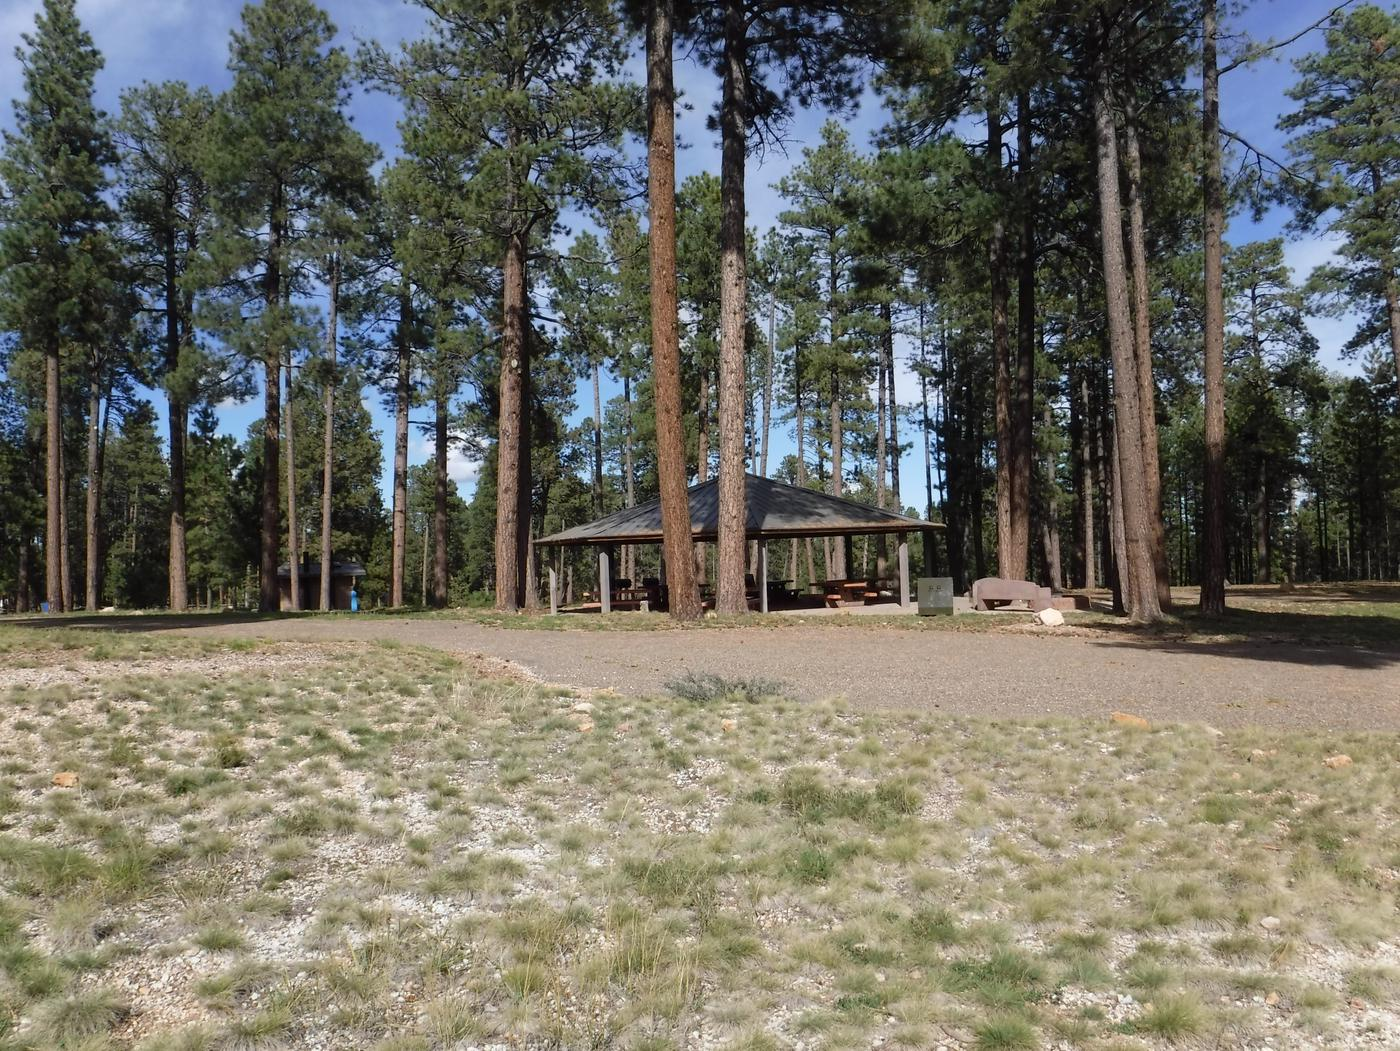 Jacob Lake group site A featuring entrance, parking, and full camp space view.